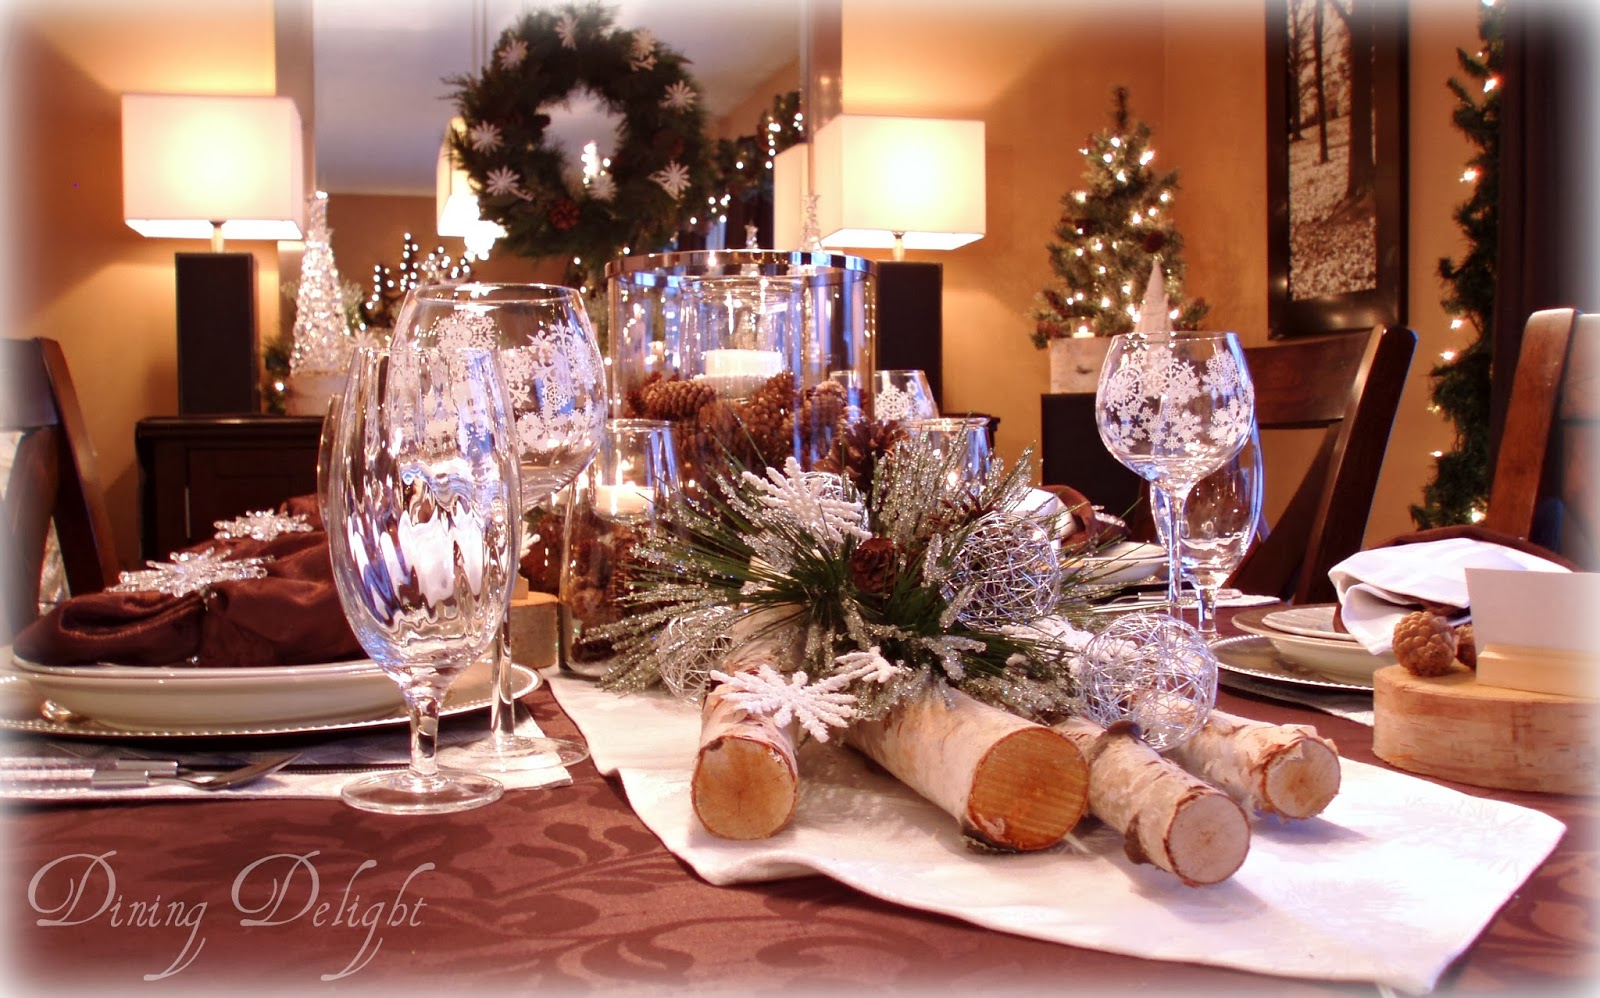 Dining Delight Birch Winter Tablescape